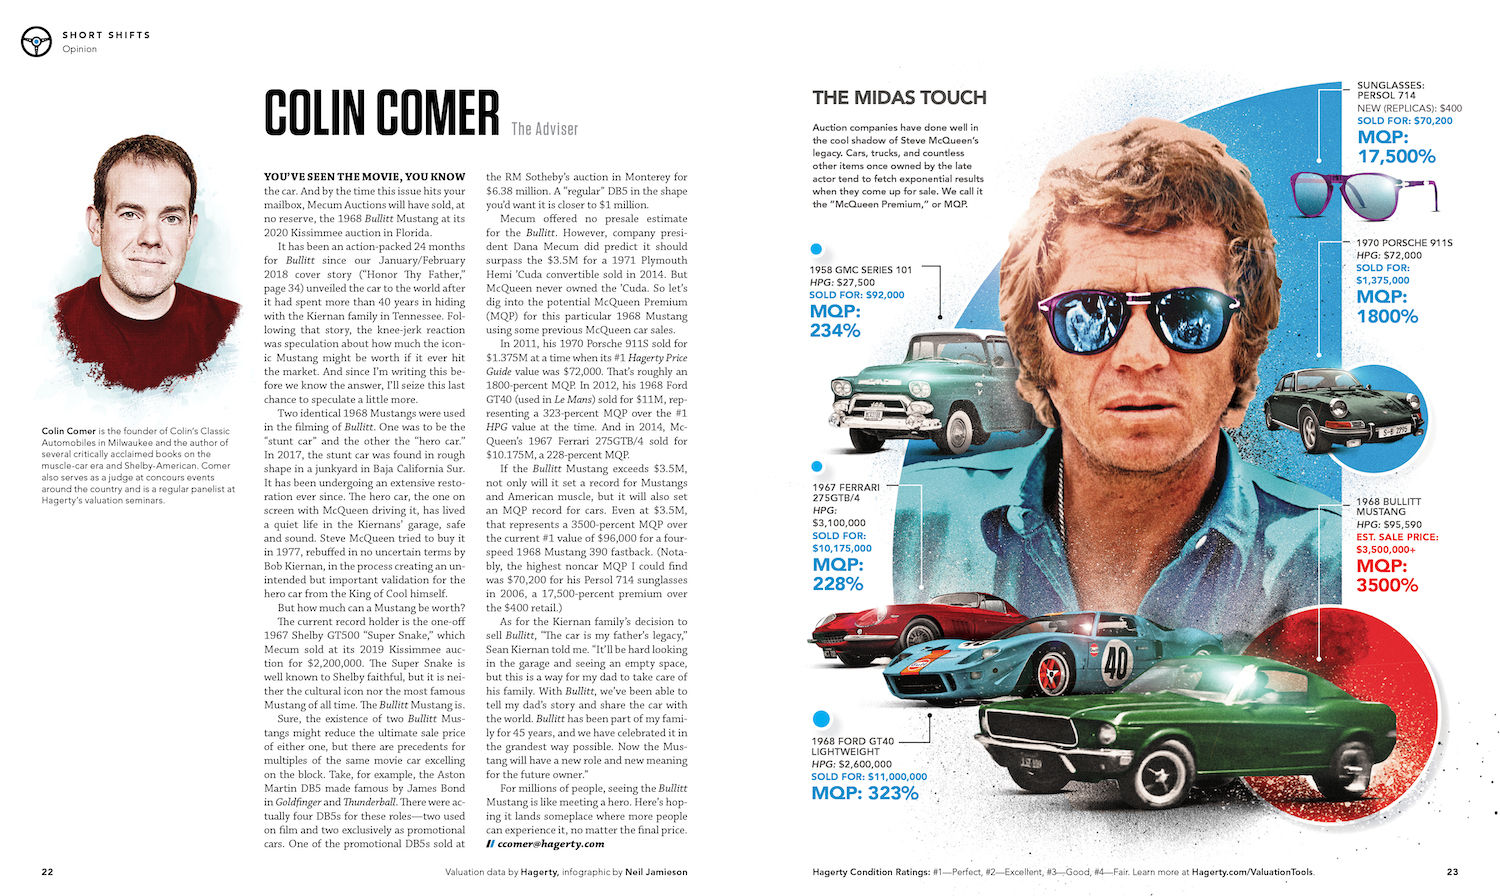 hagerty magazine colin comer story art